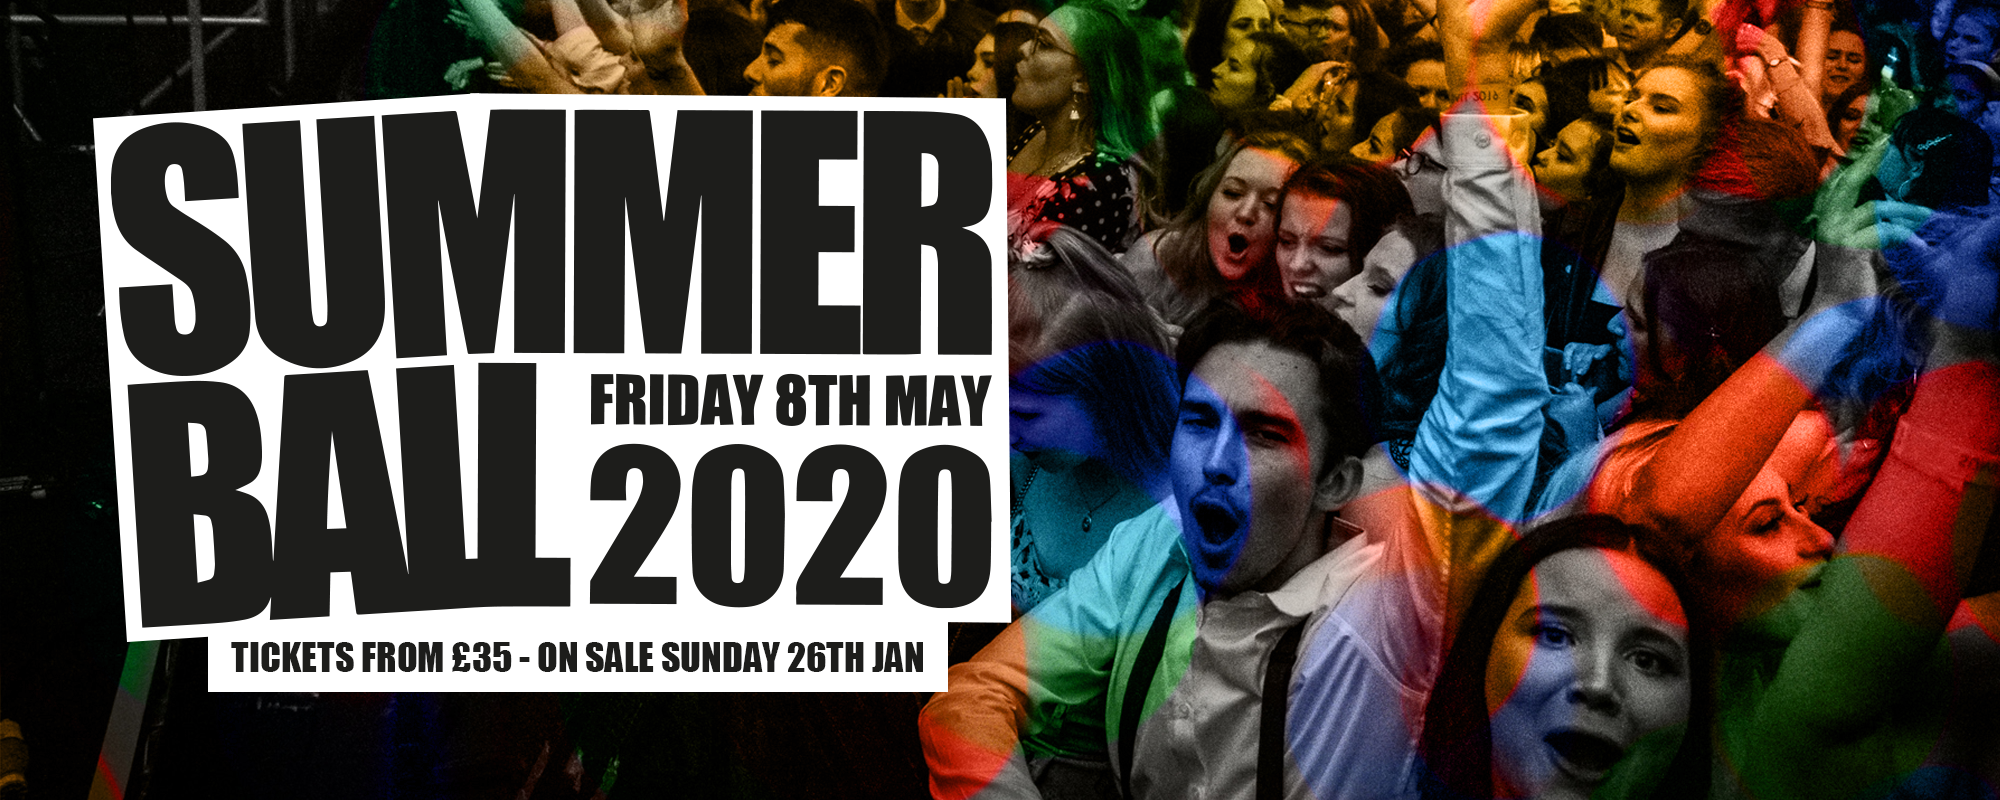 SB20 crowd image - Friday 8th May 2020. On sale Sunday 26th Jan at midday